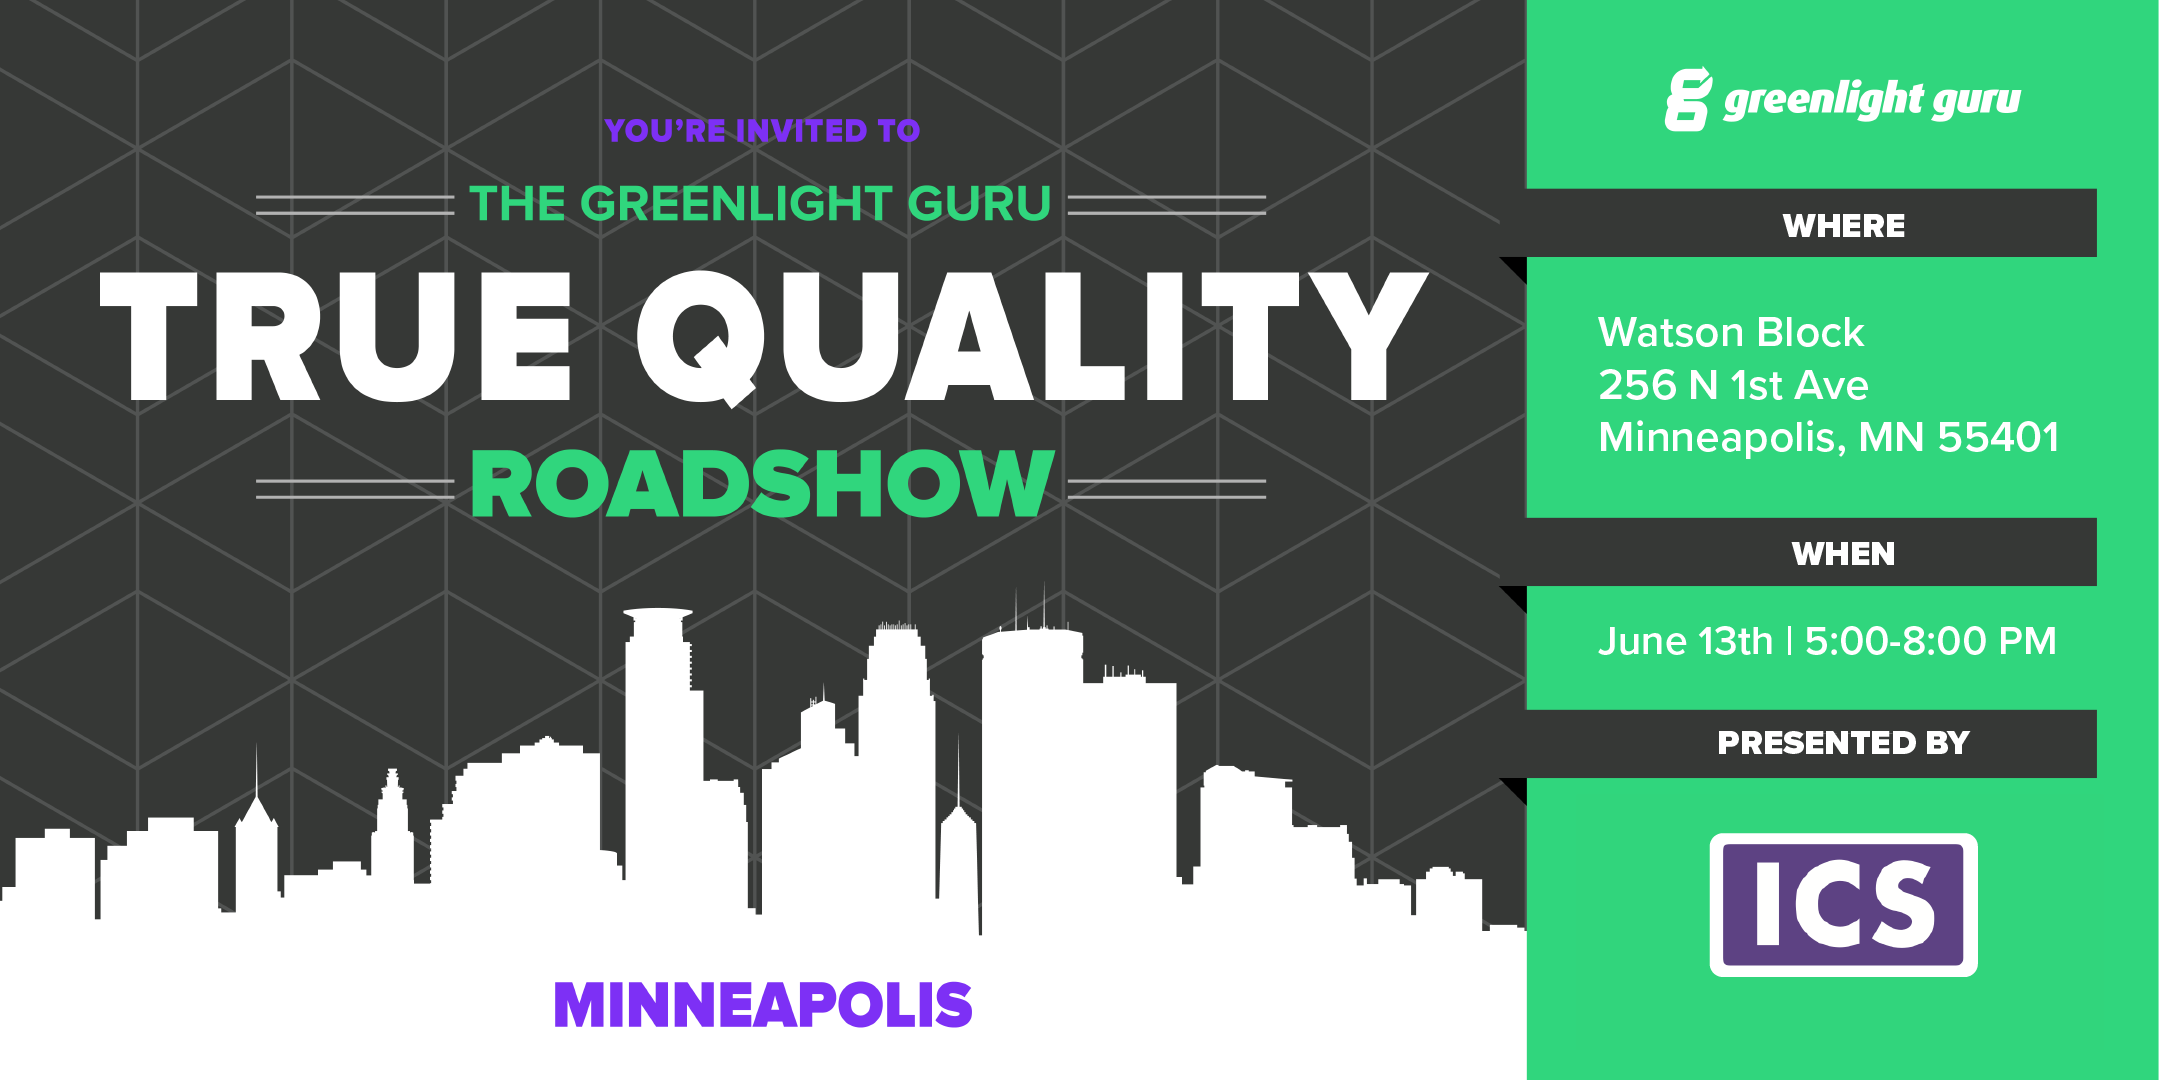 Greenlight Guru True Quality Roadshow